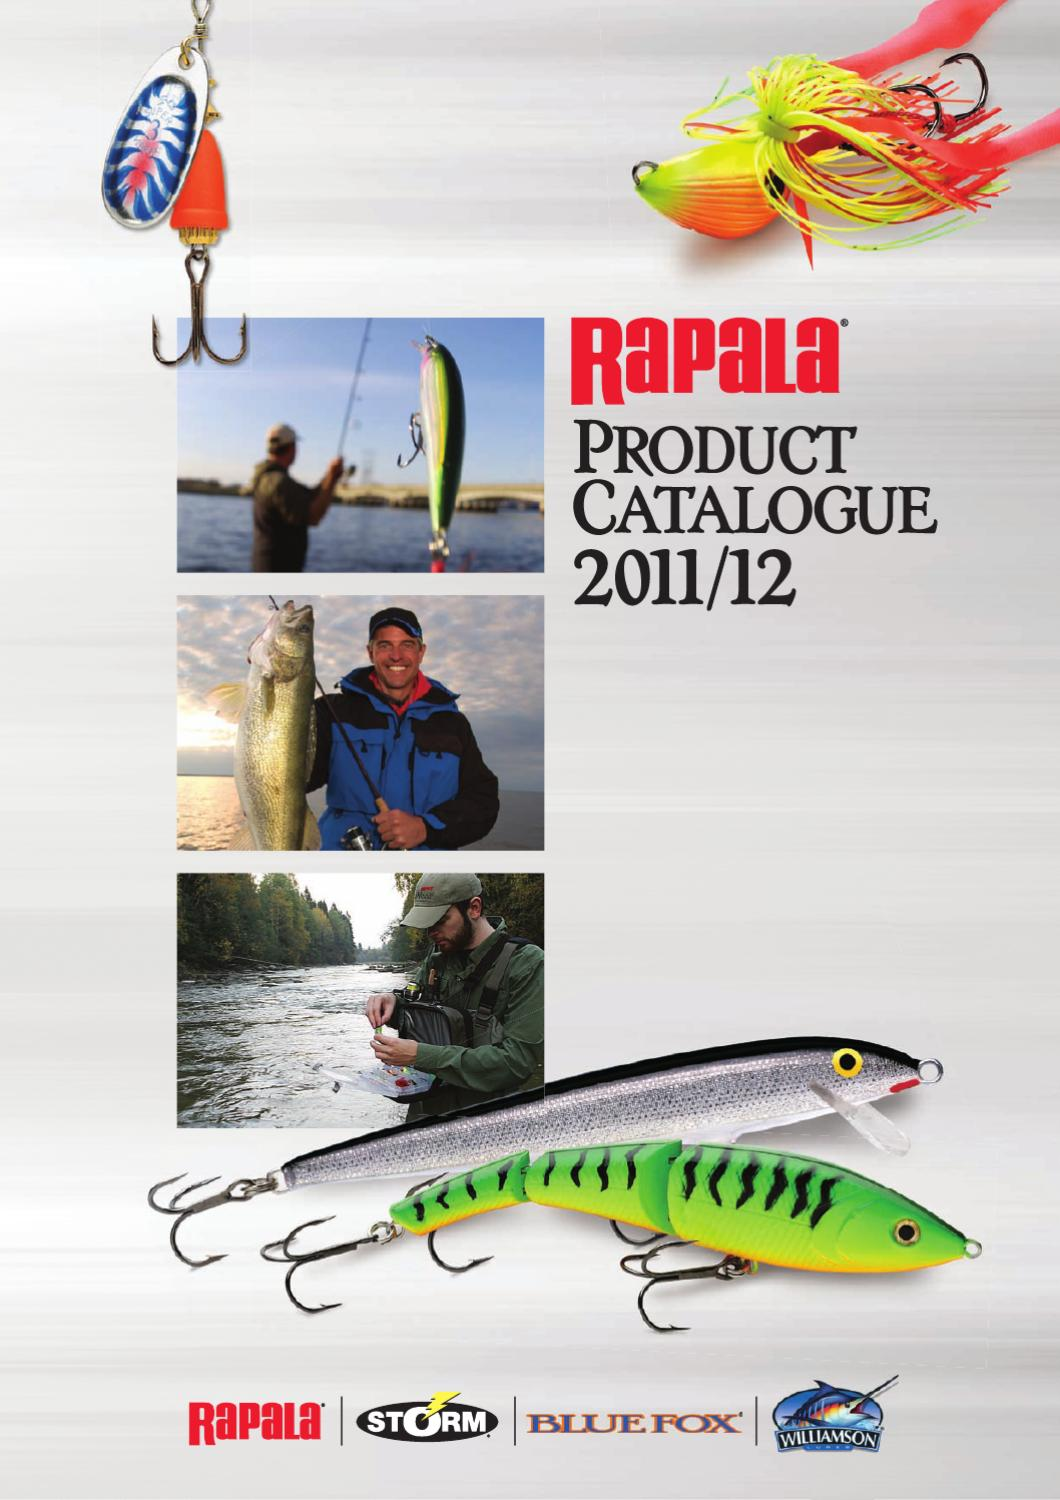 Rapala Original Floater Lures 5cm Pike Zander Sea Salmon Bass Fishing Tackle